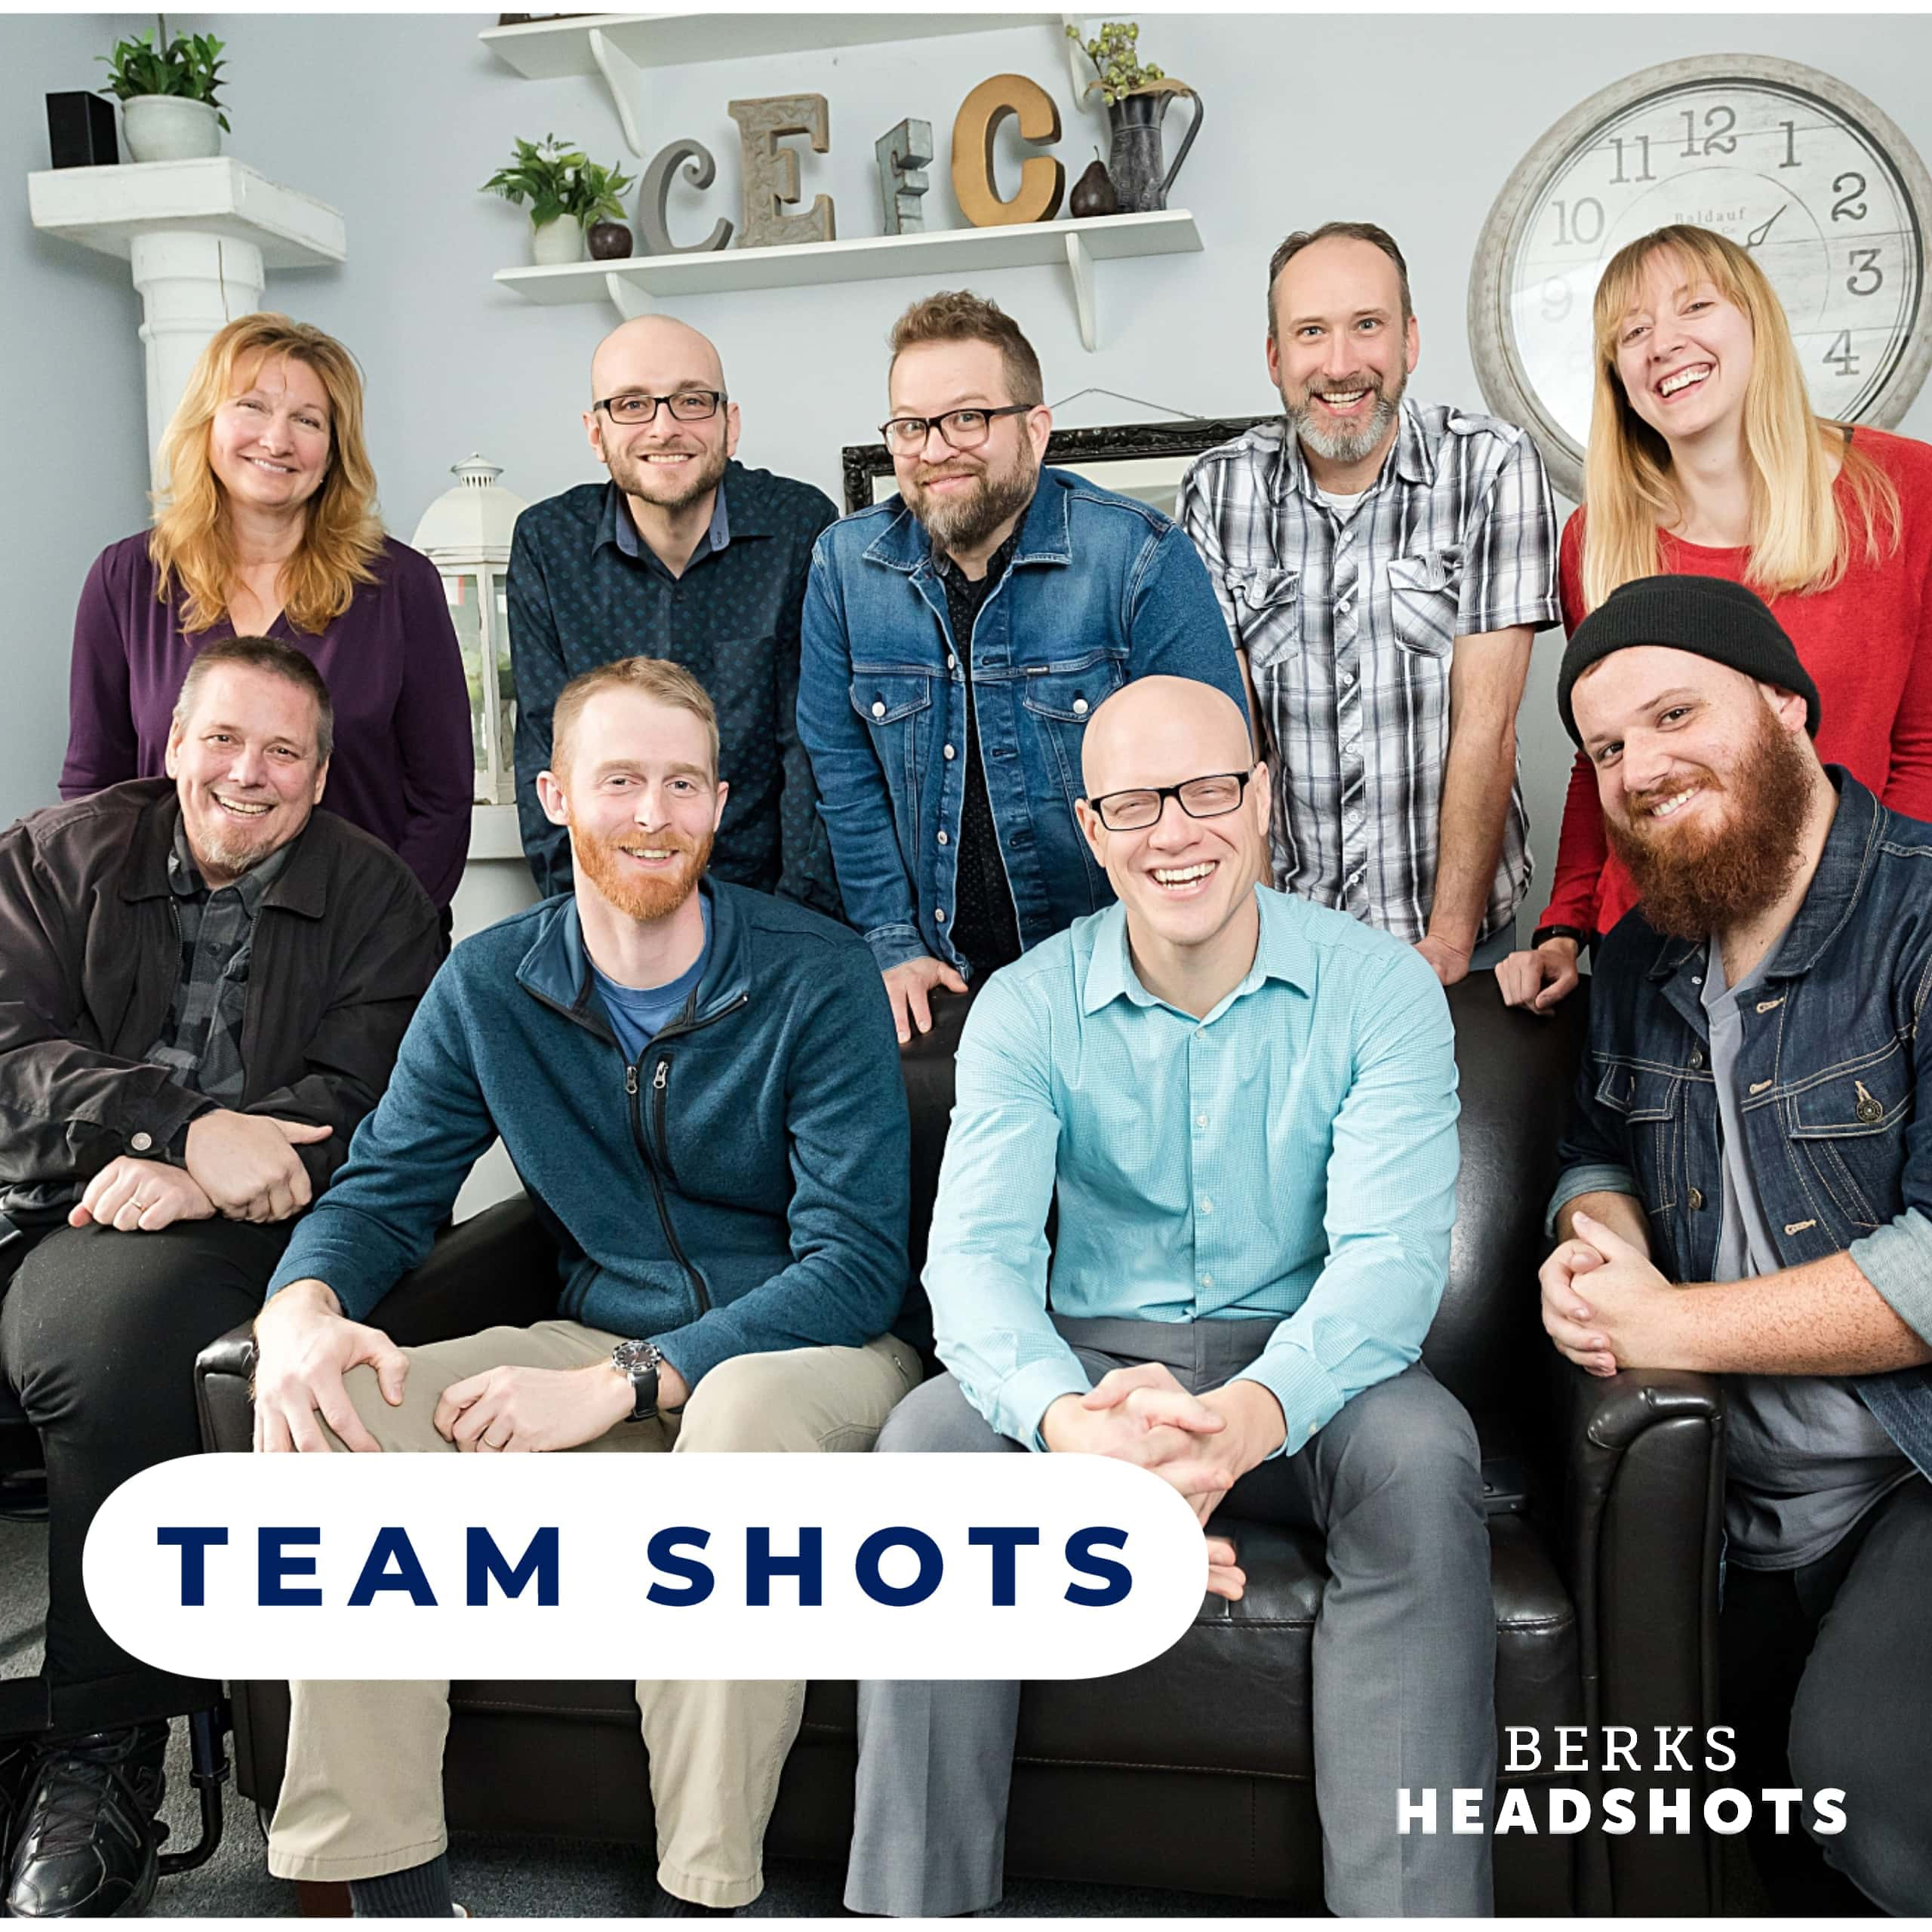 How to Build Brand Confidence With Team Photos